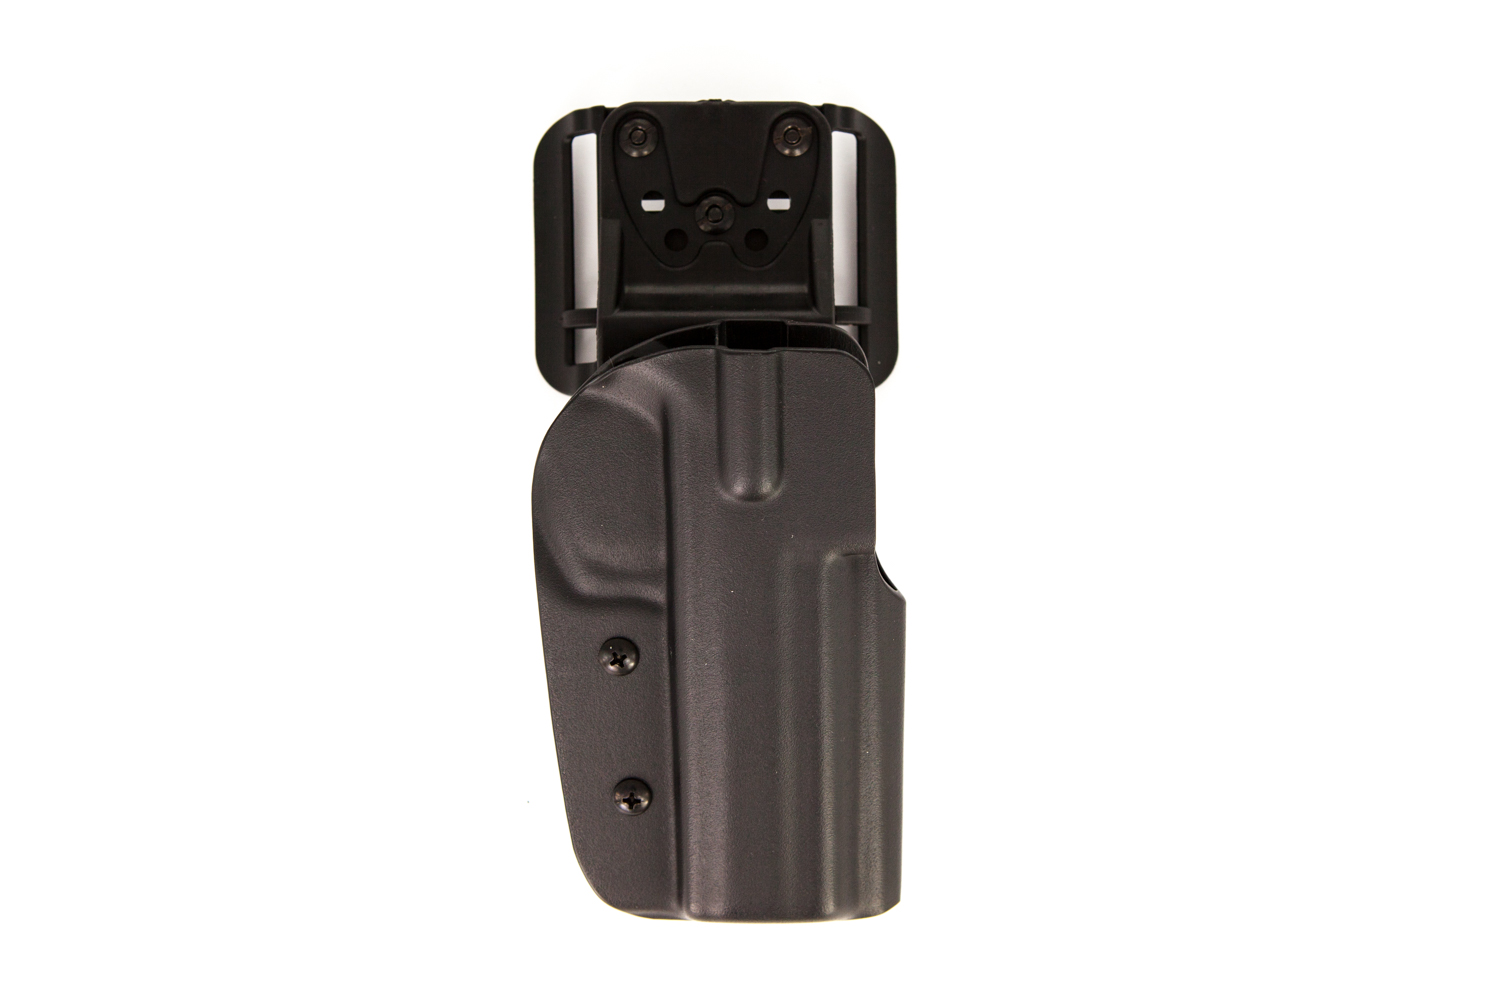 Blade Tech CZ 75 Holster SP-01